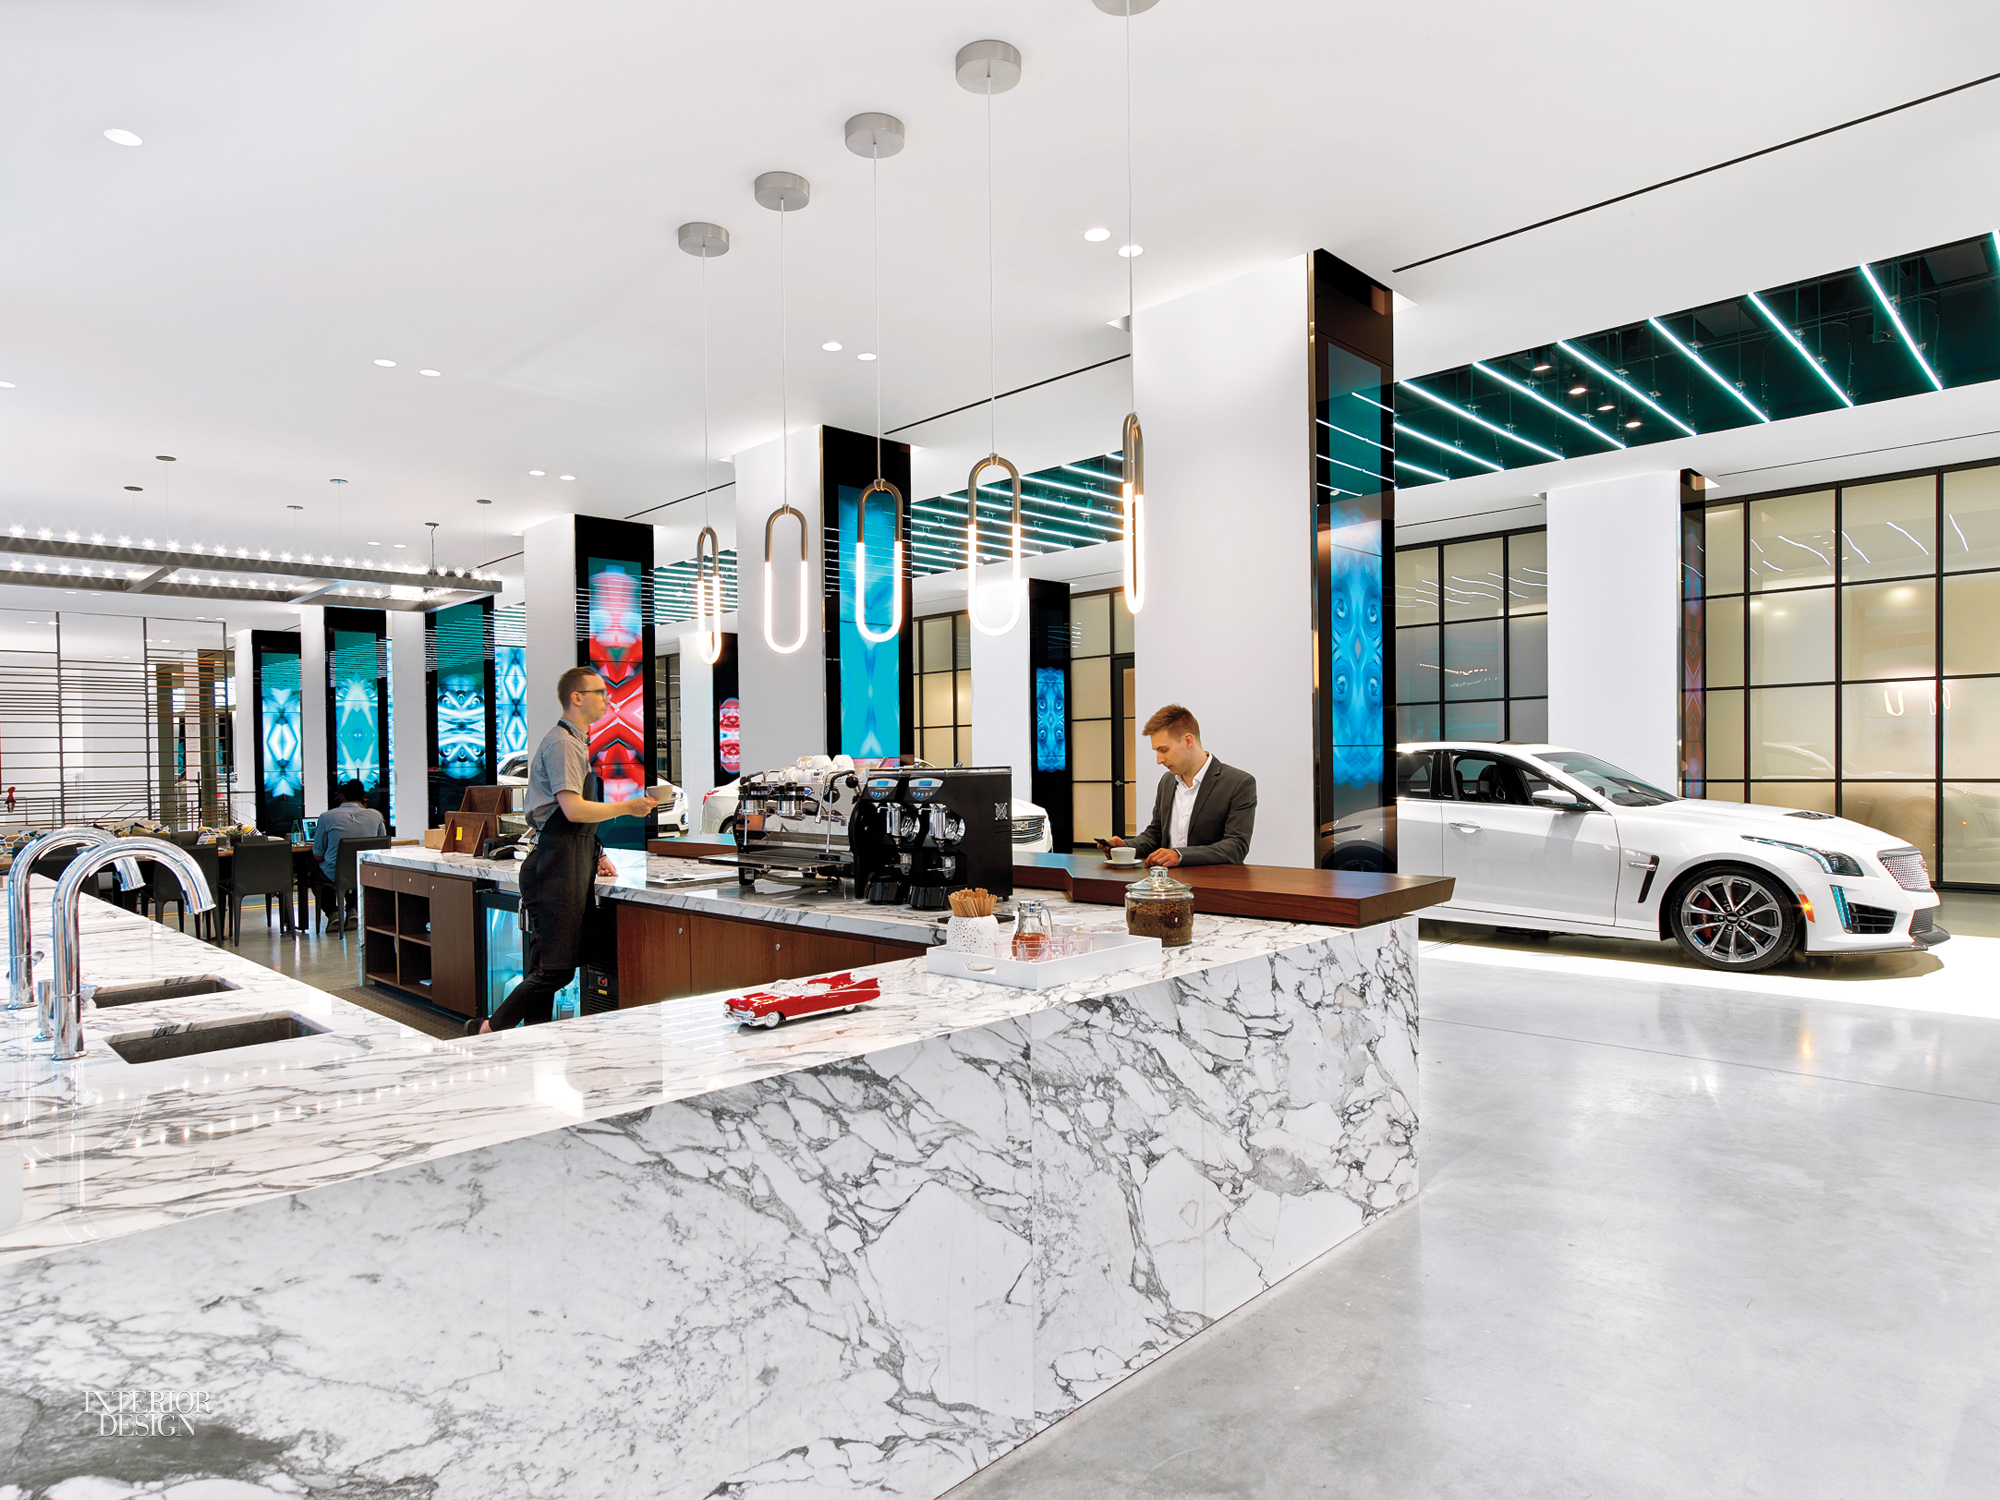 Cadillac House, designed by Gensler, aims to engage with culture in a substantive way while still prominently showcasing Cadillac products.